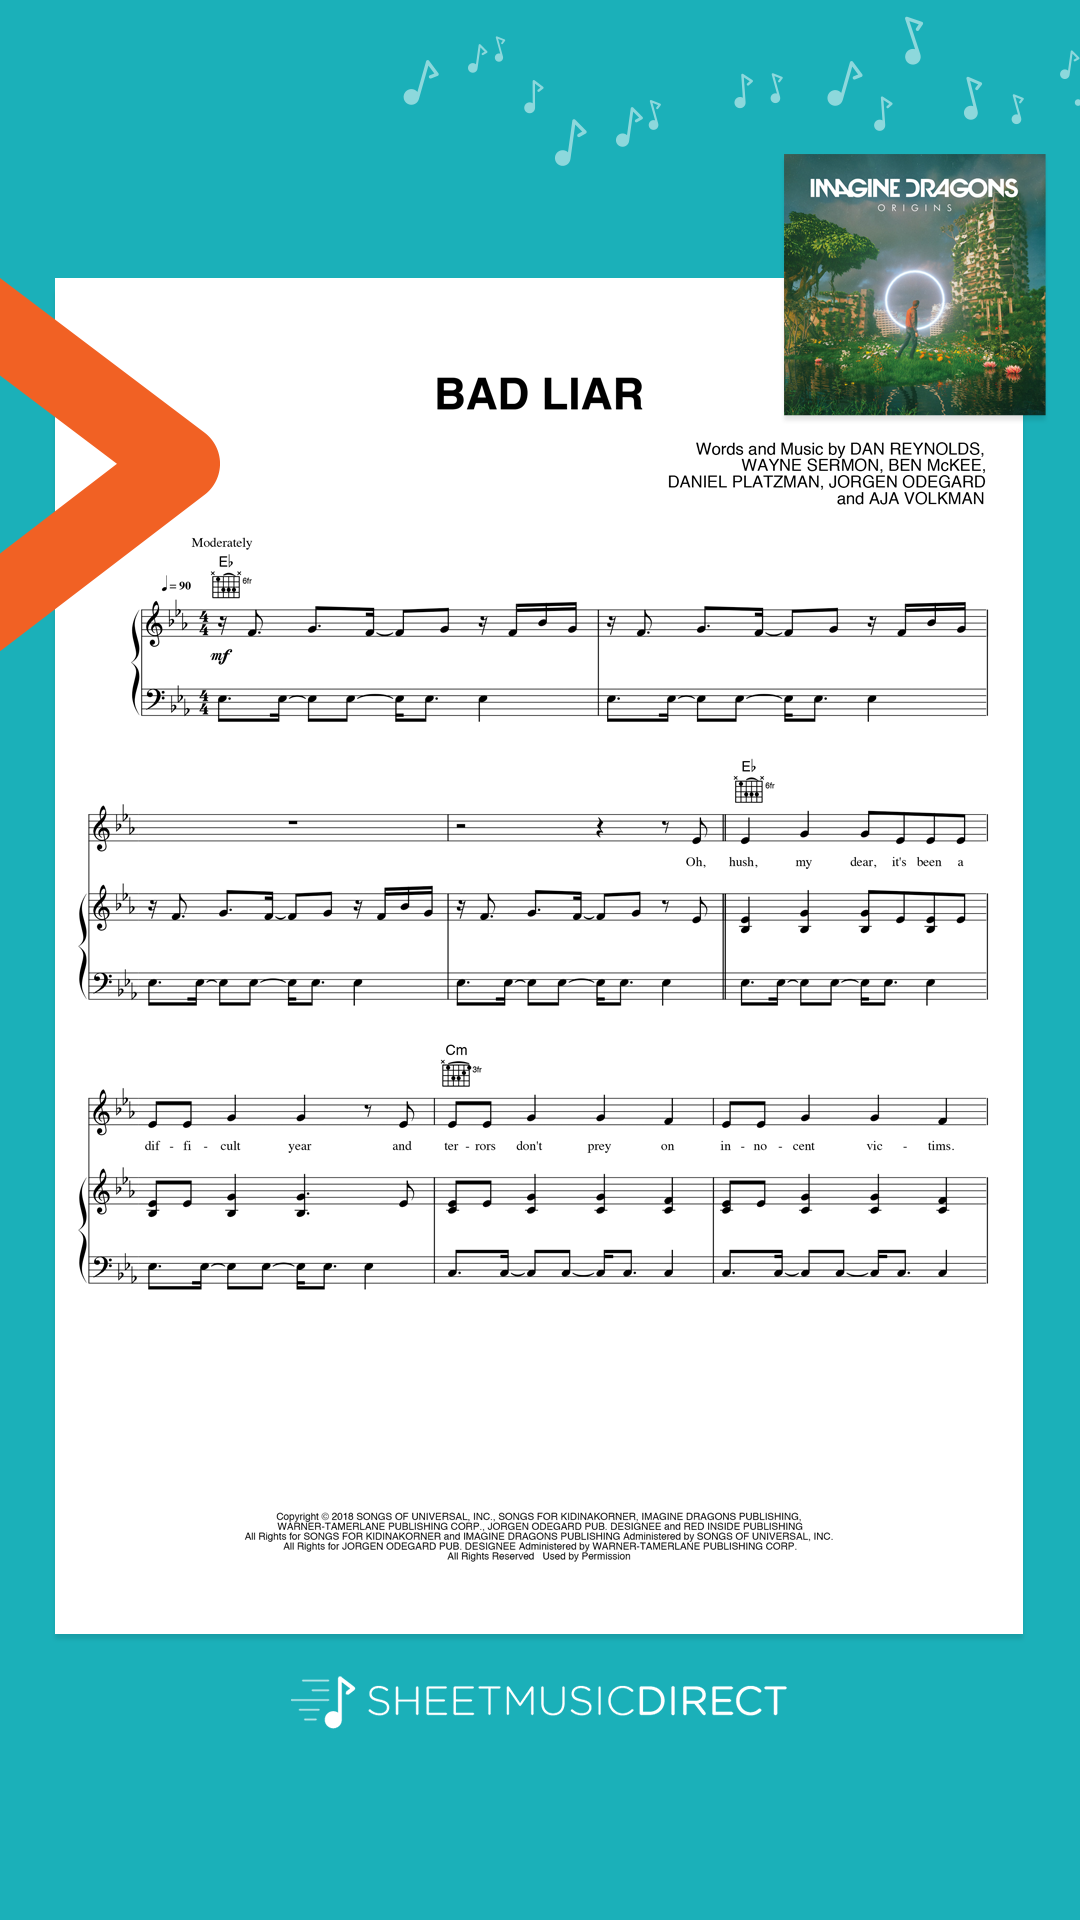 Download and play official Imagine Dragons sheet music